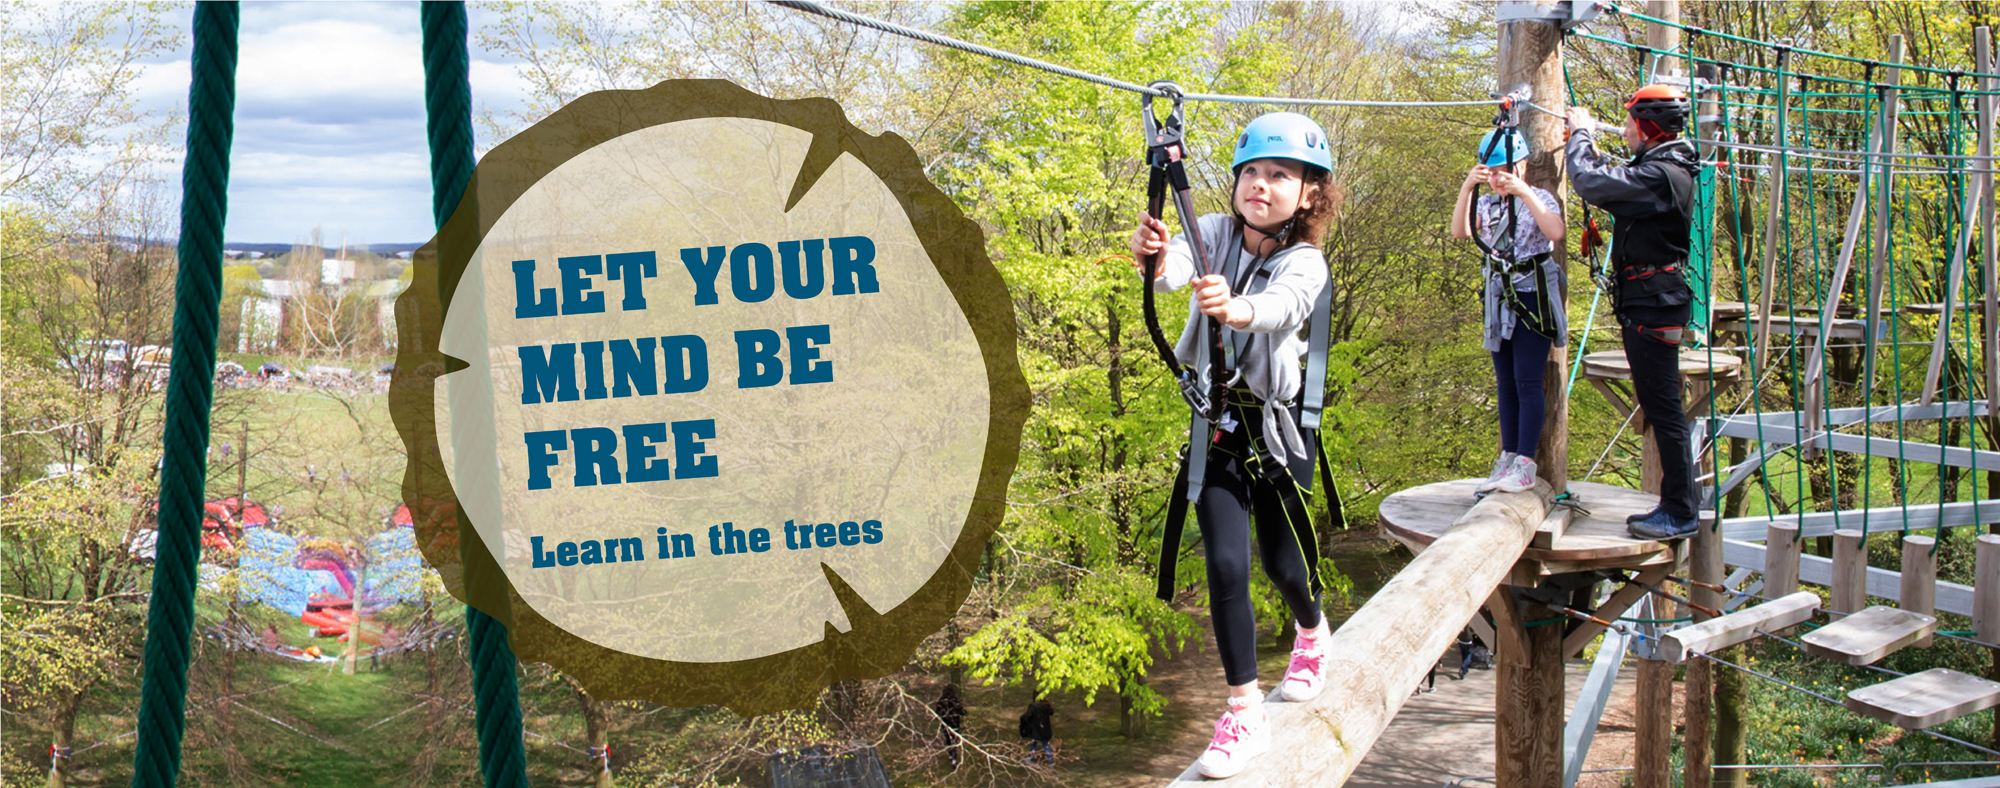 A photo showing a girl using the high ropes with the message 'Let your mind be free'.